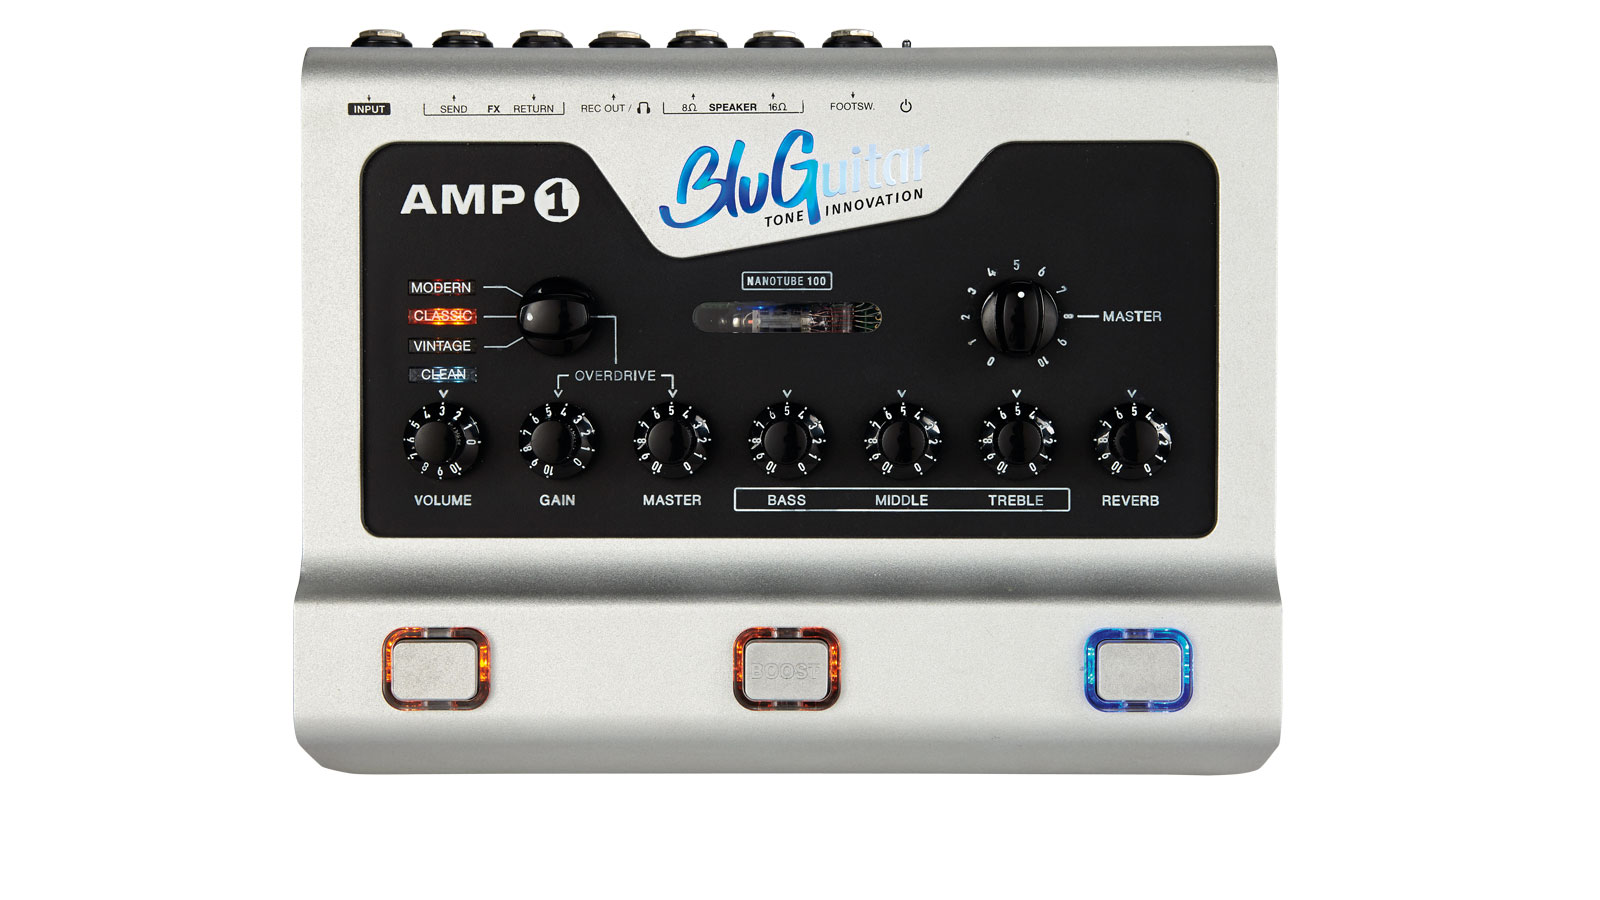 Bluguitar Amp 1 Review Musicradar Inserting A Tone Control Between Preamp And Power